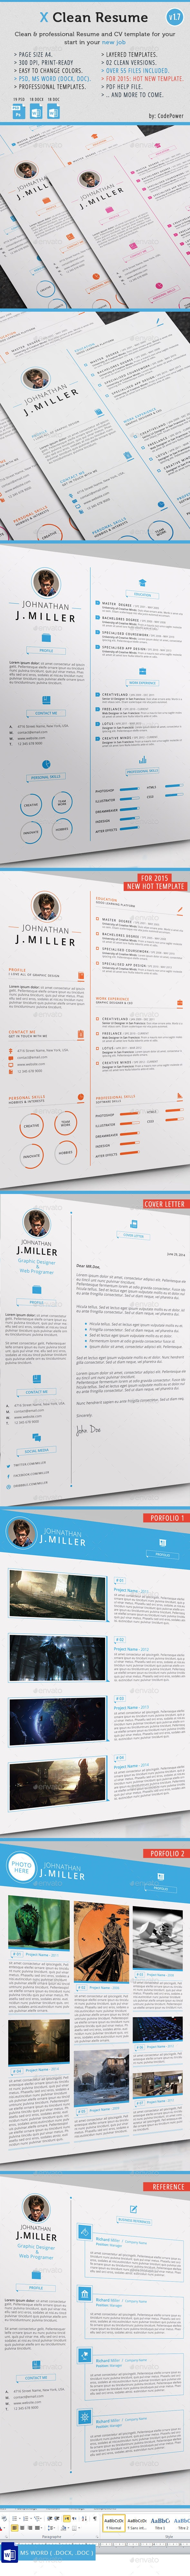 X Clean Resume - Resumes Stationery